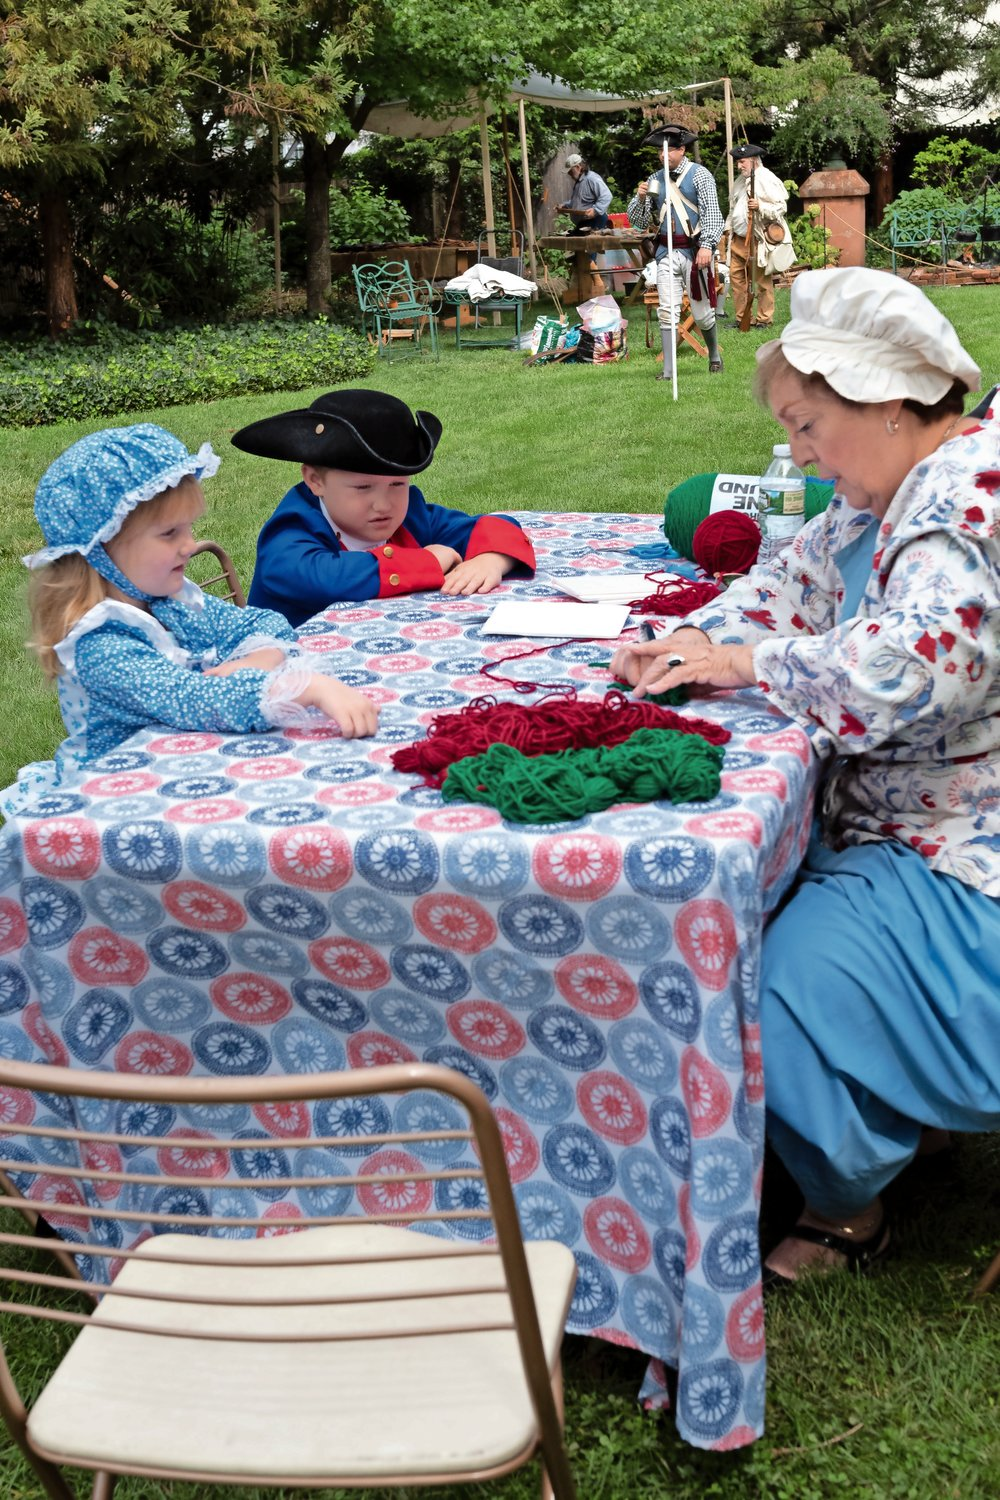 Charlotte and Jaxson Weiss learned about colonial life from JoAnn Paulsen at Raynham Hall's Colonial Day.